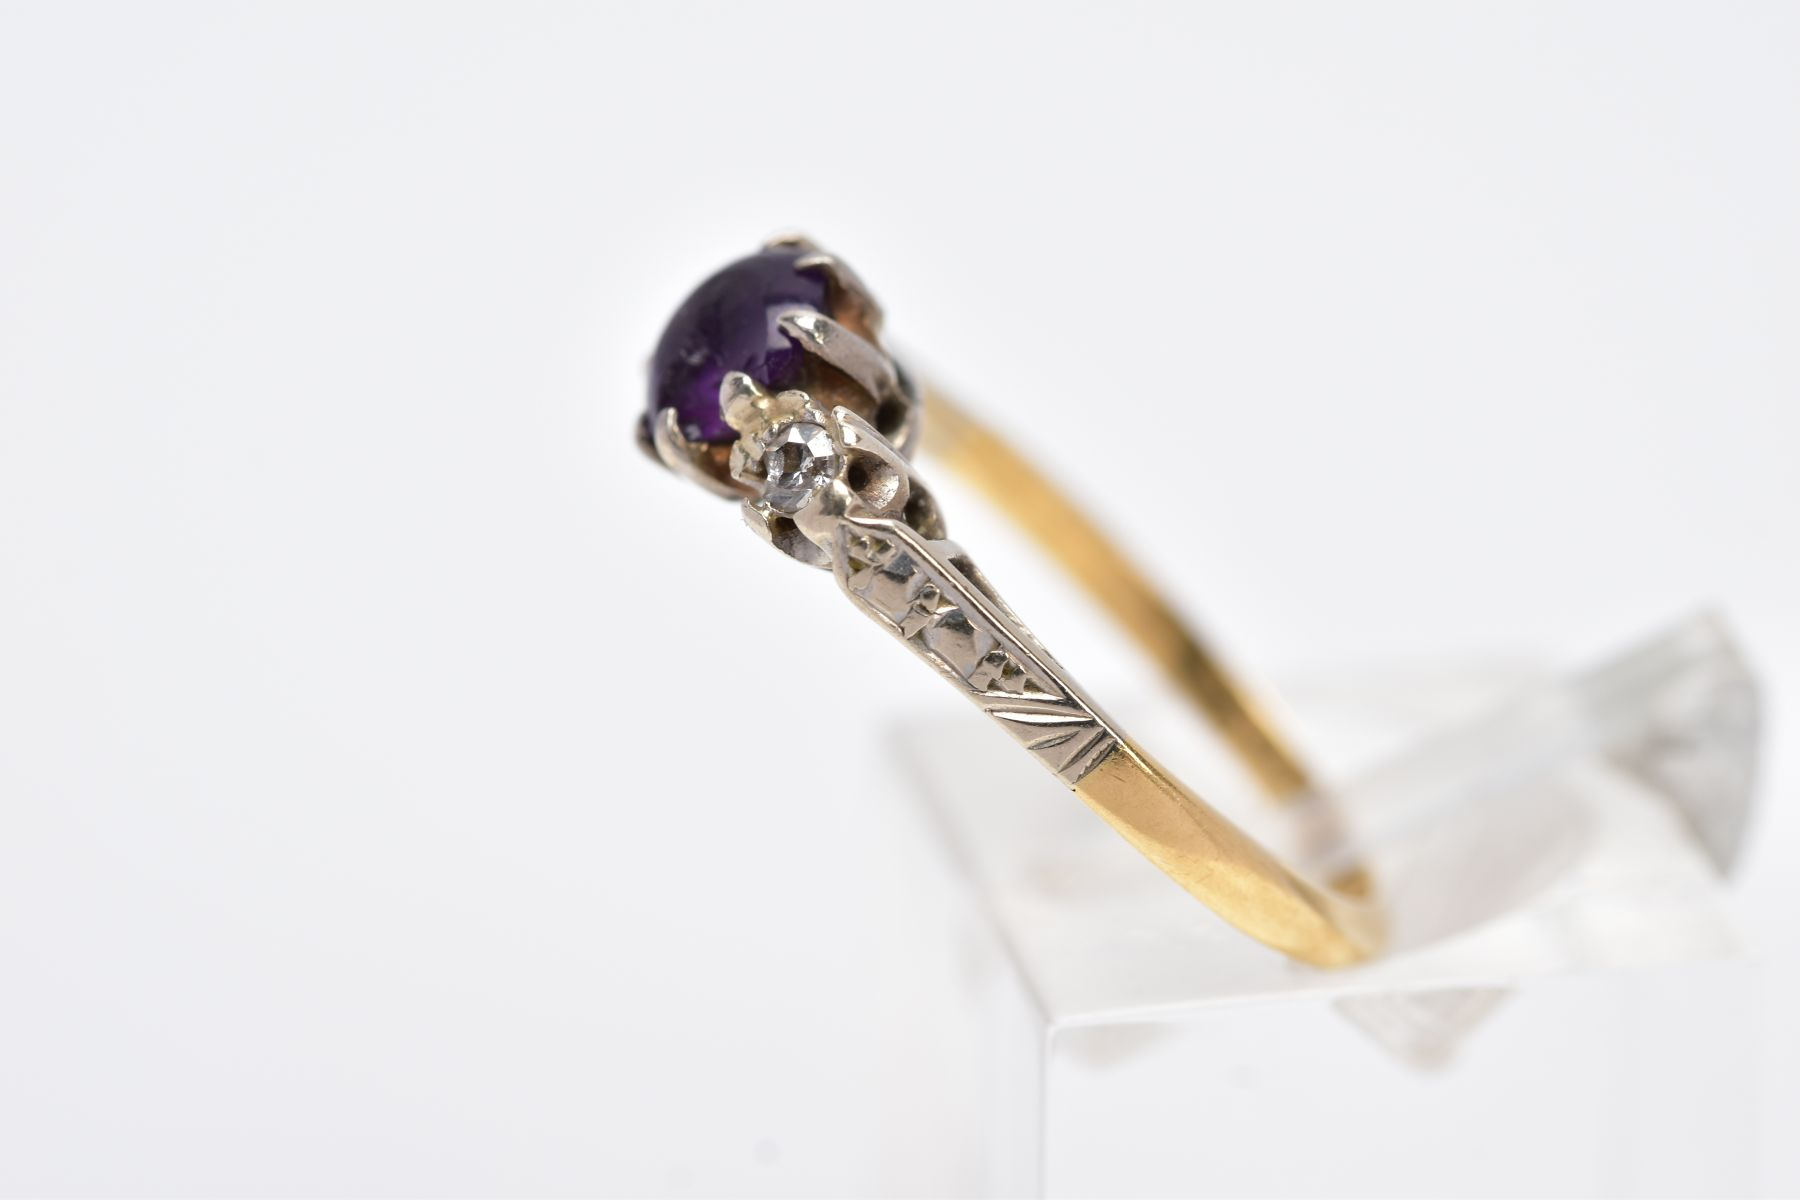 A YELLOW METAL THREE STONE RING, design with a central circular cut purple stone, assessed as paste, - Image 2 of 4